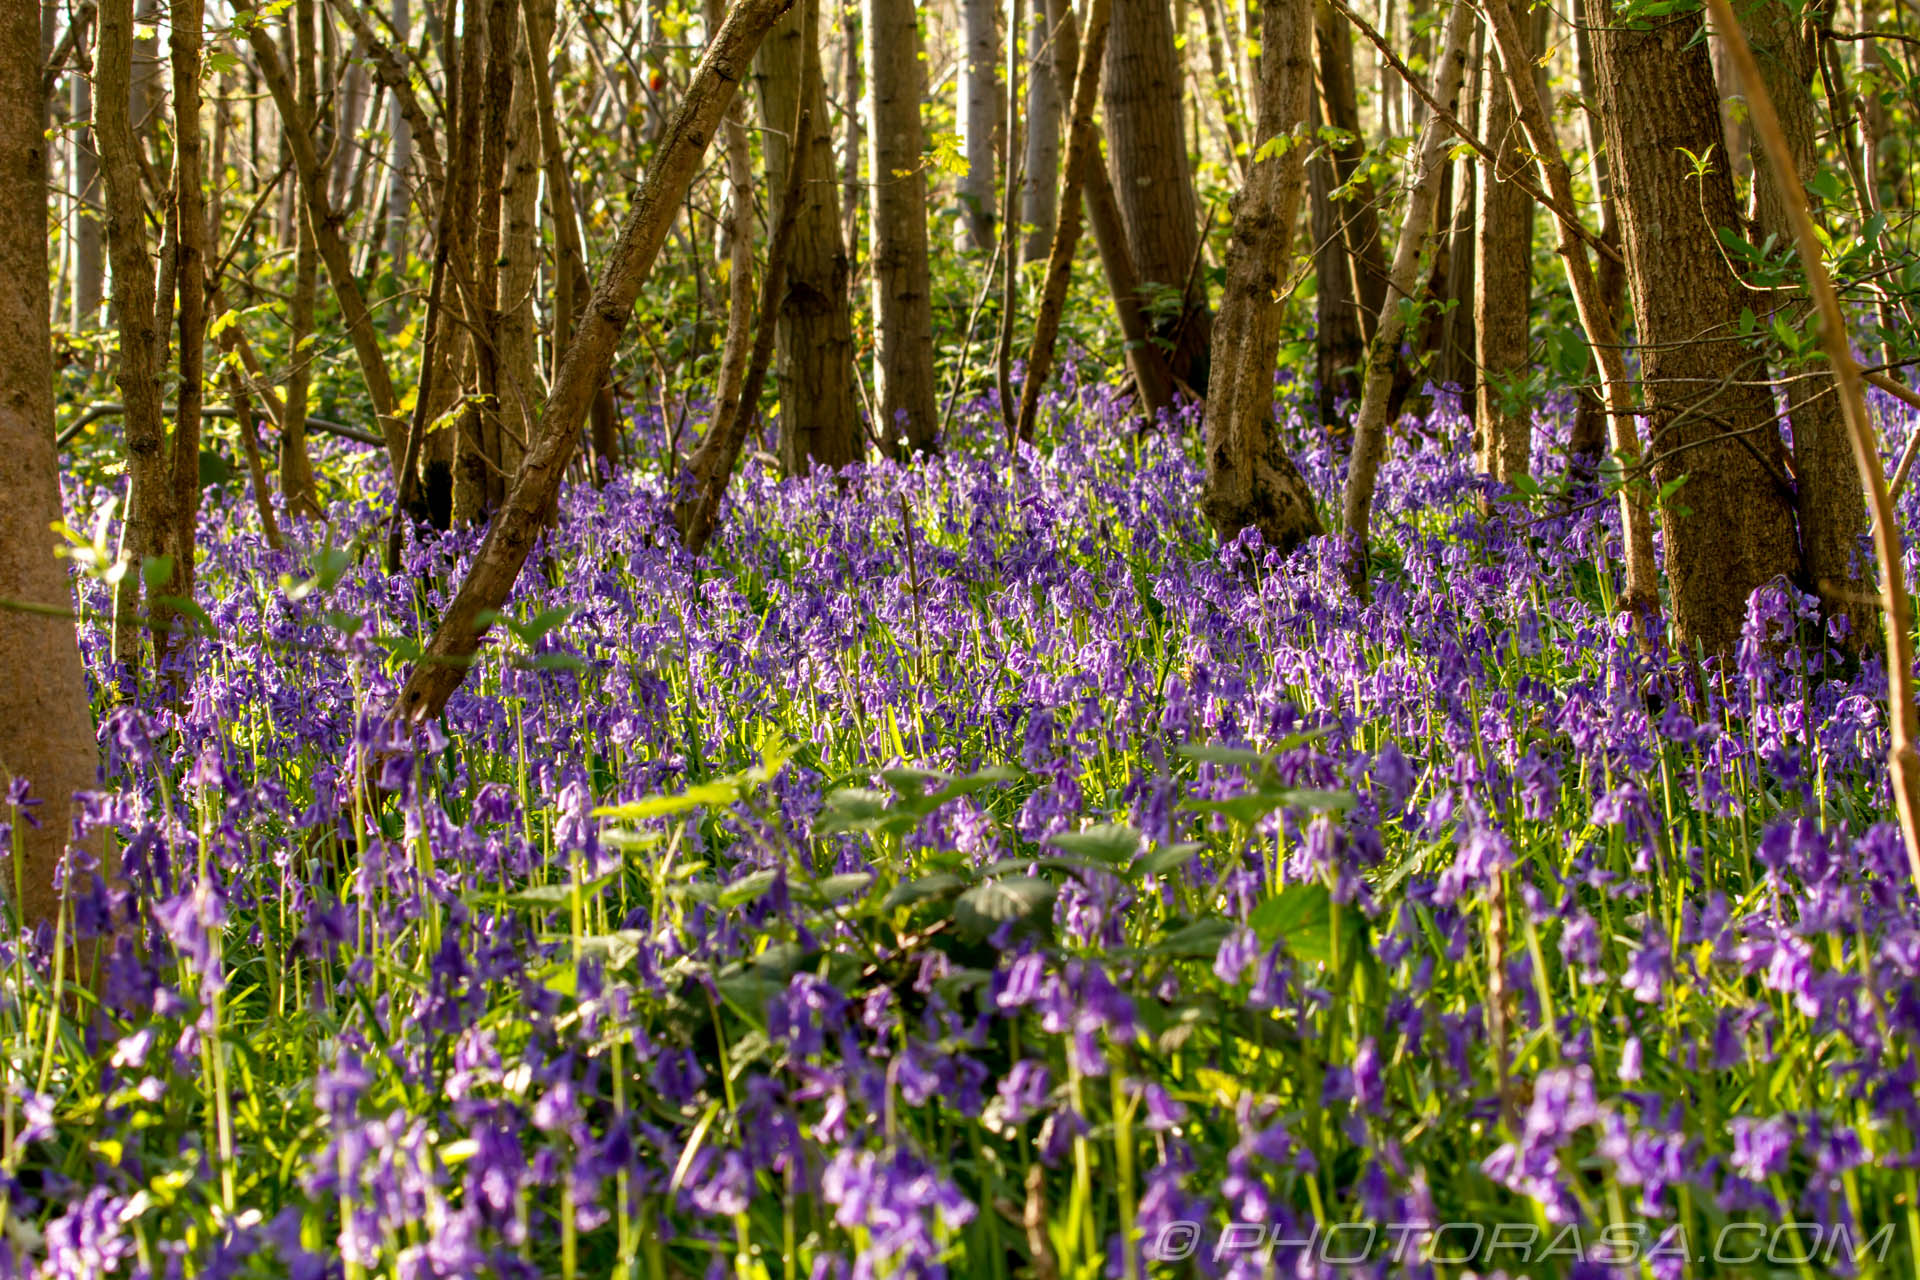 http://photorasa.com/bluebells-woods/sea-of-bluebells/